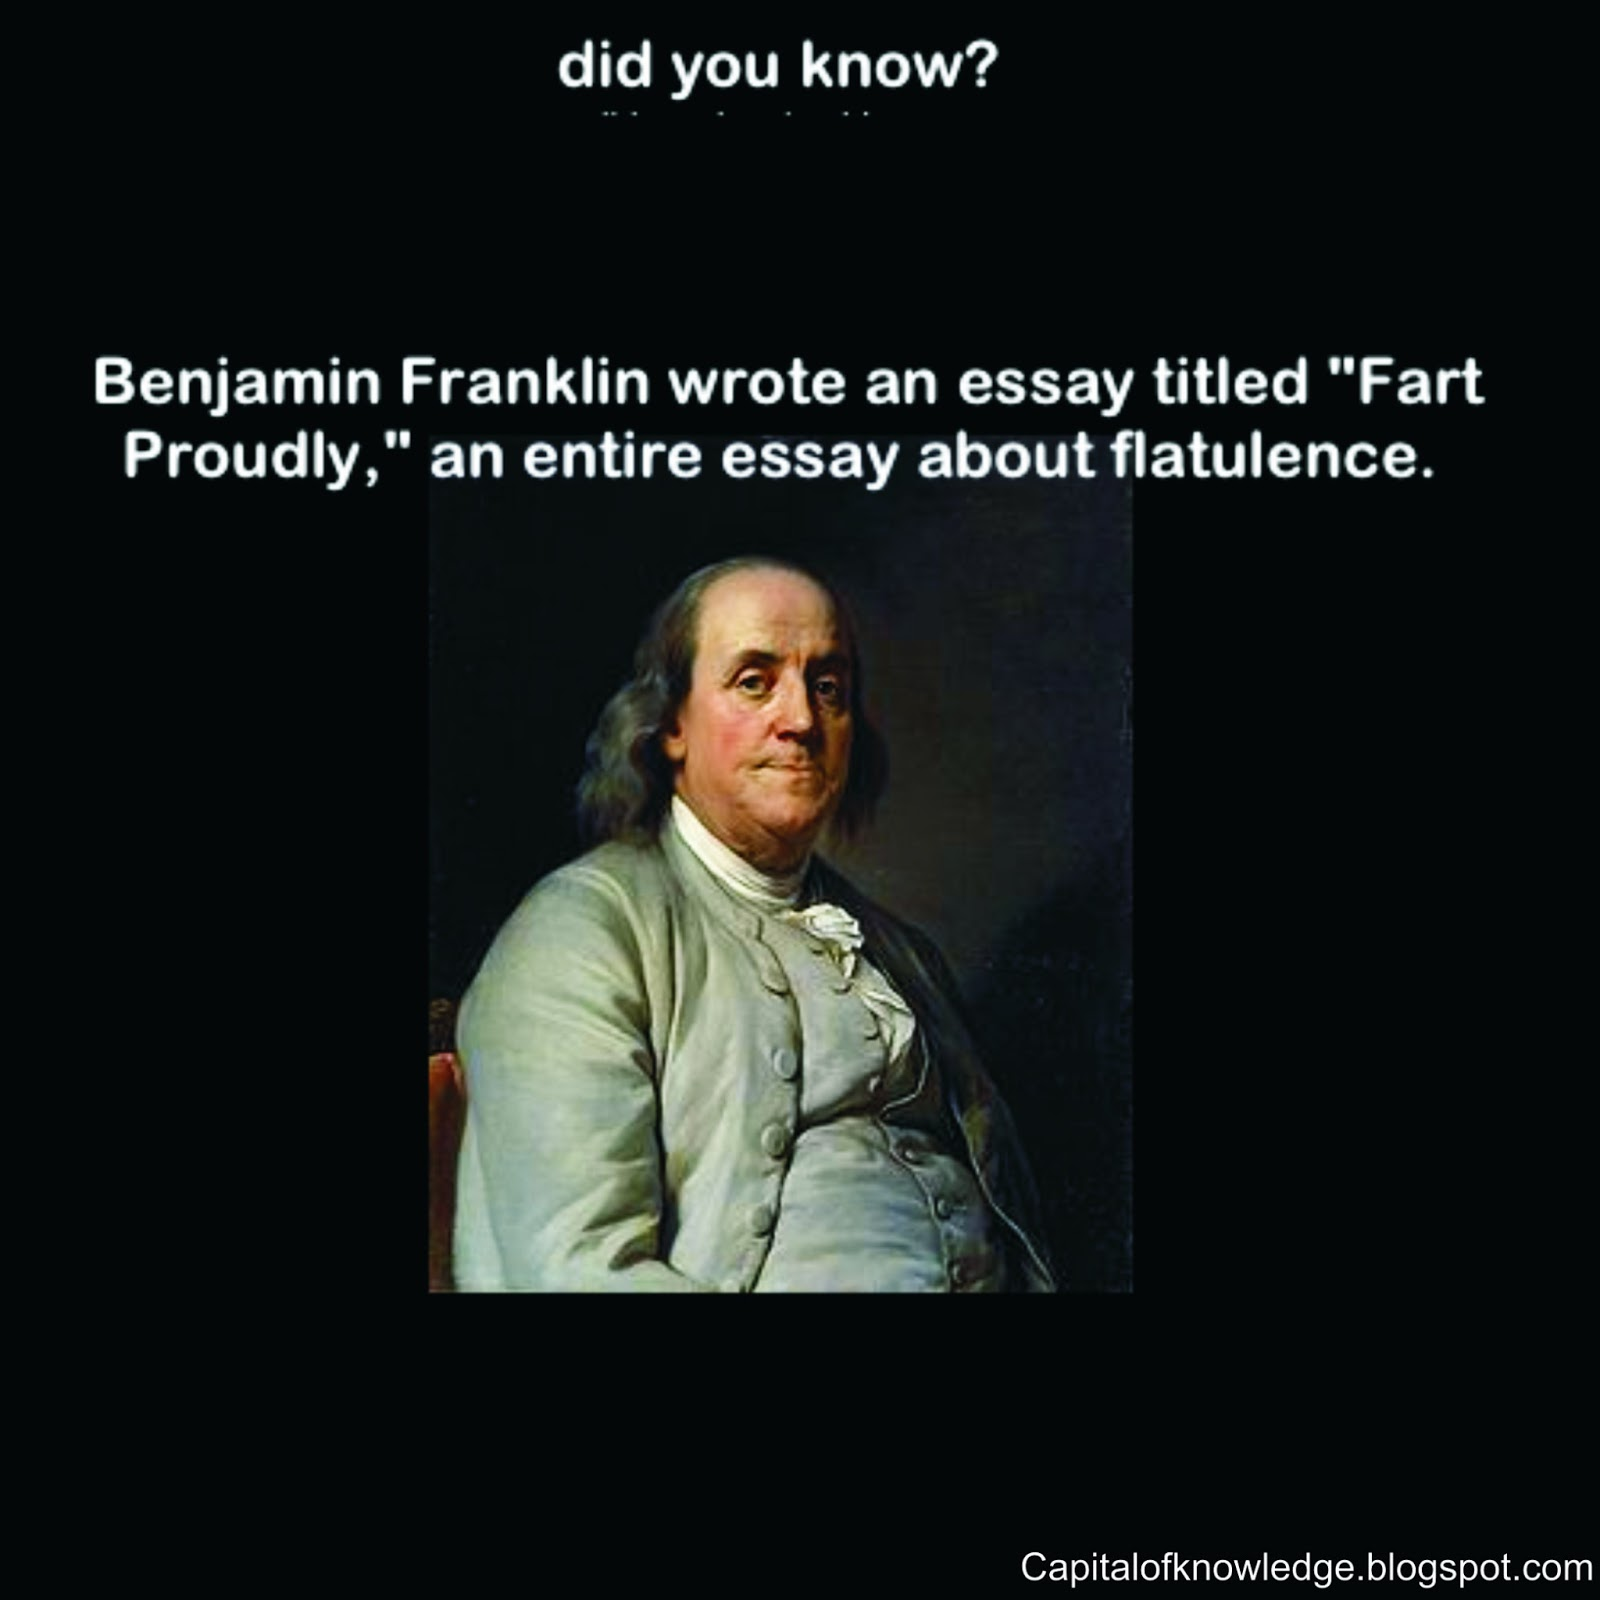 ben franklin farts essay Fart proudly (also called a is the popular name of a notorious essay about farts written by benjamin franklin c 1781 while he was franklin distributed.